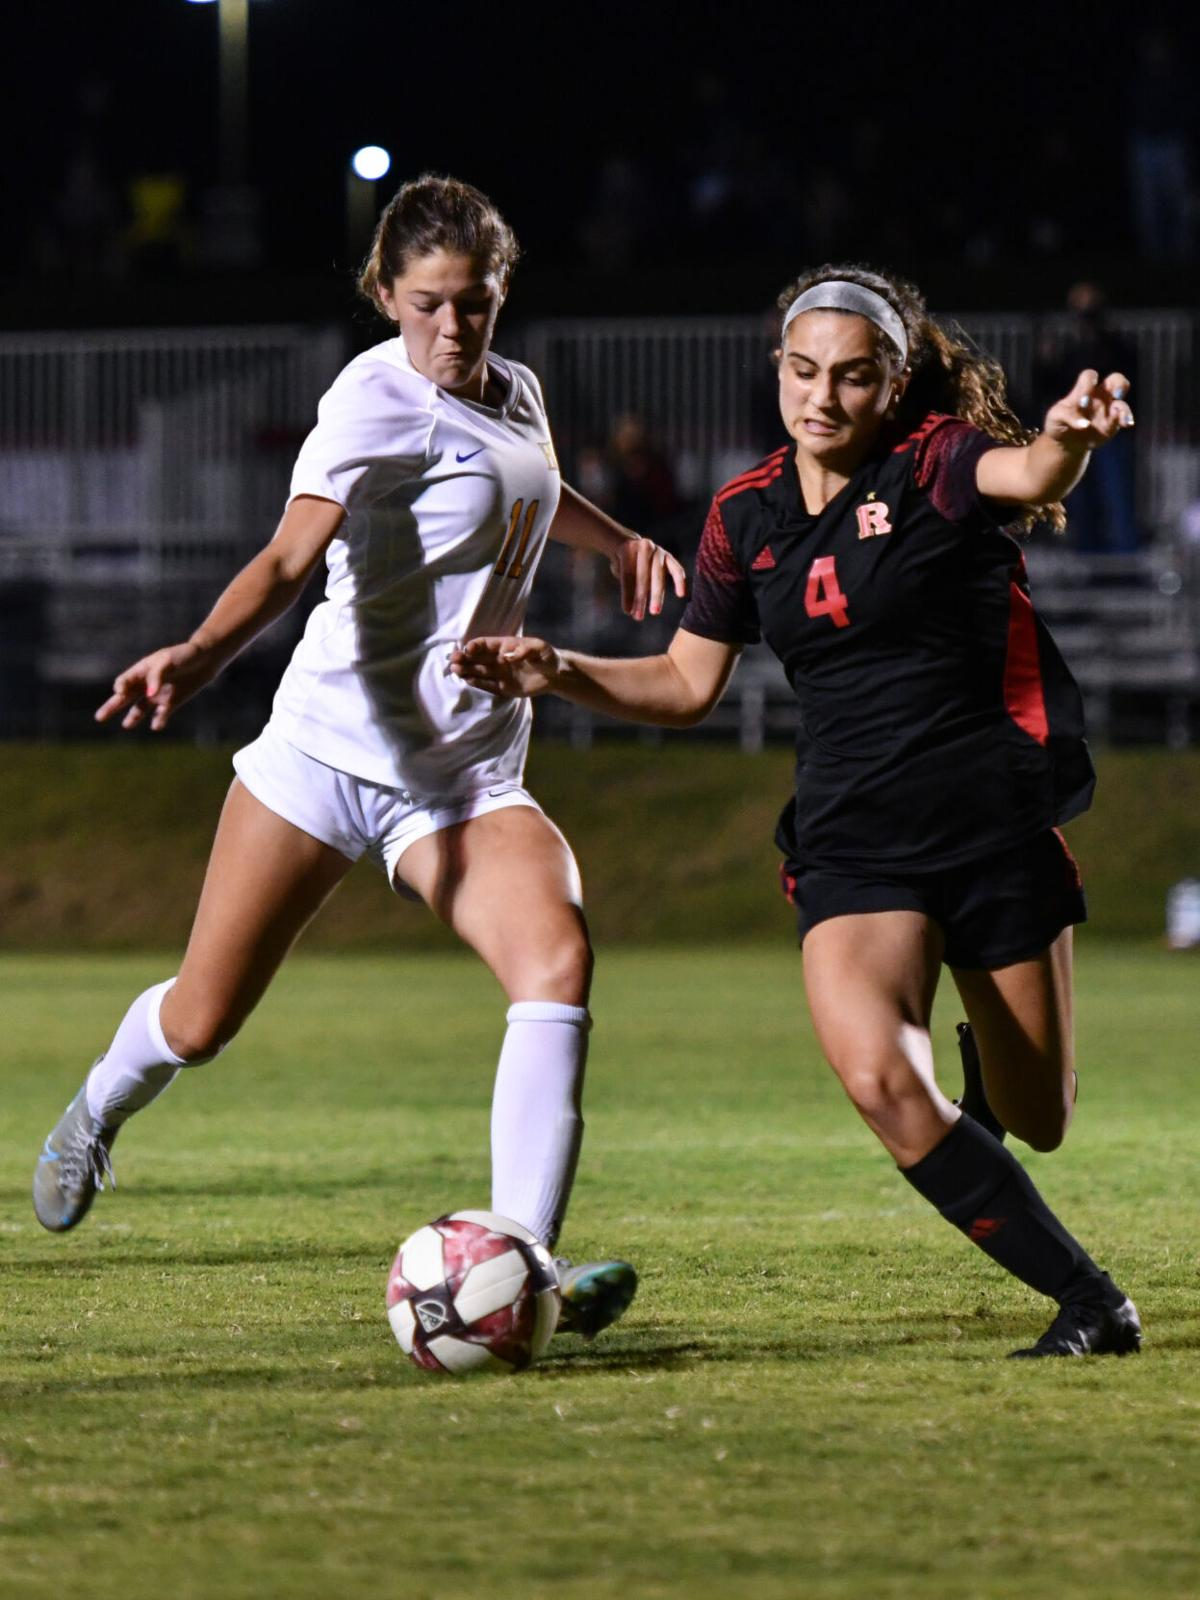 Soccer – Battle Ground Academy at Ravenwood